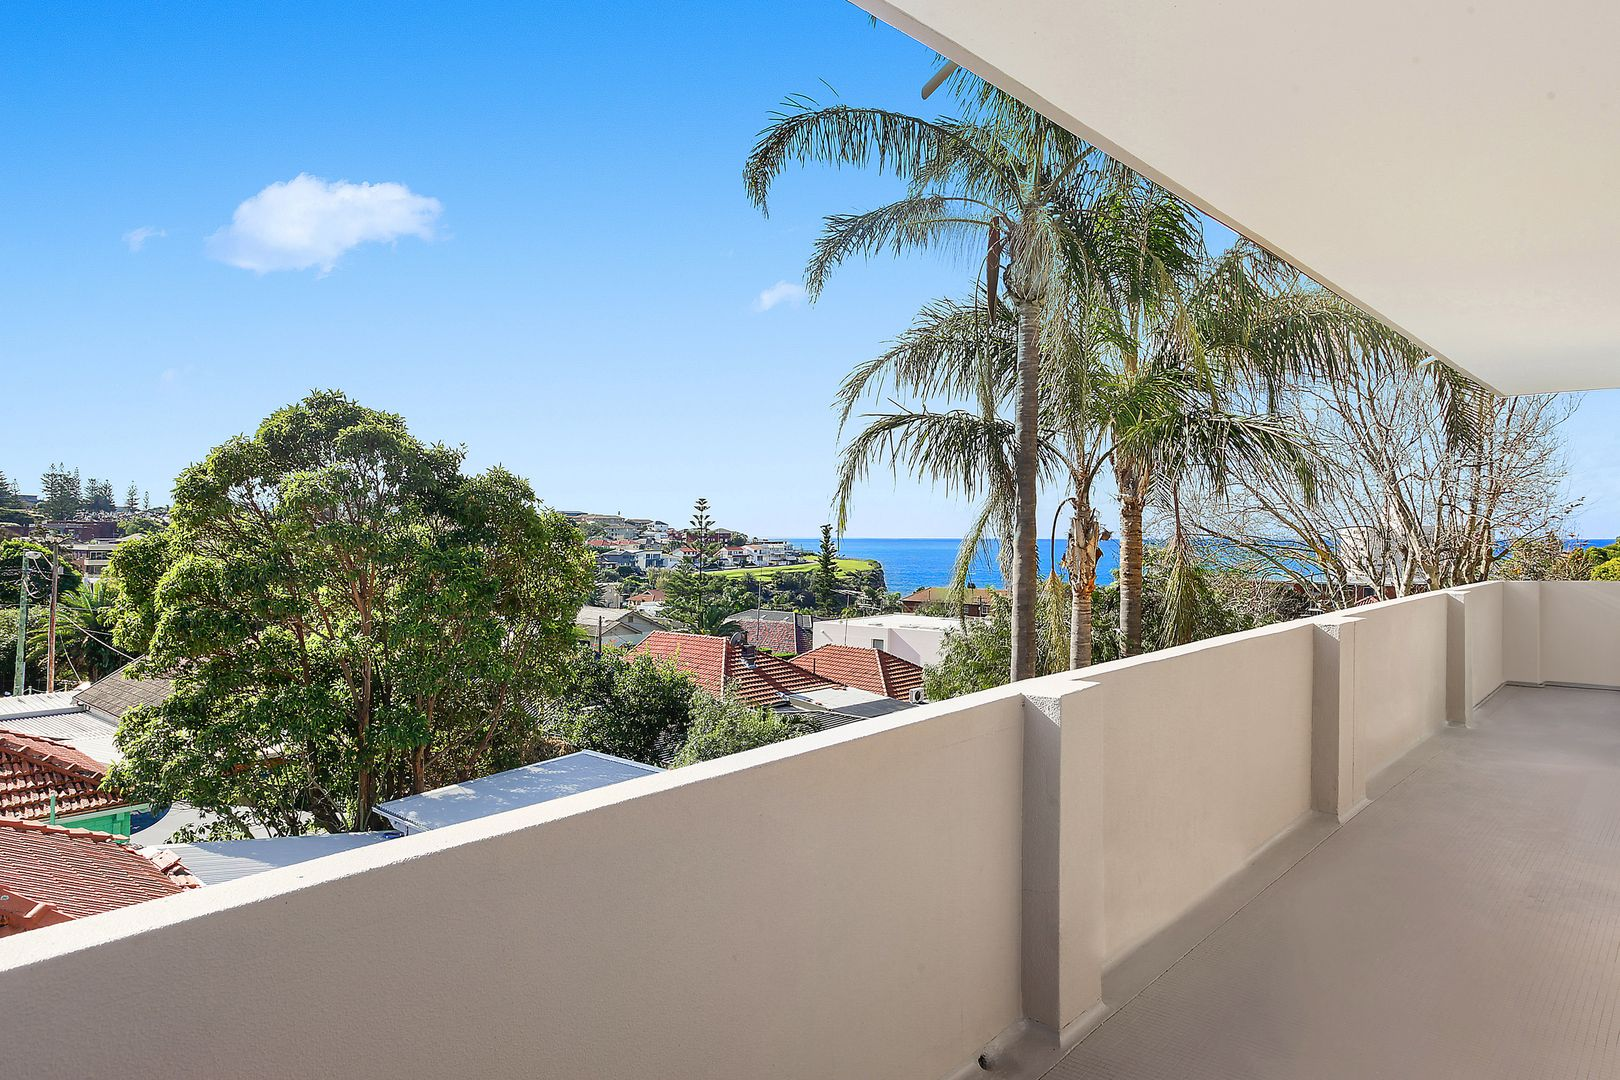 4/685 Old South Head Road, Vaucluse NSW 2030, Image 1